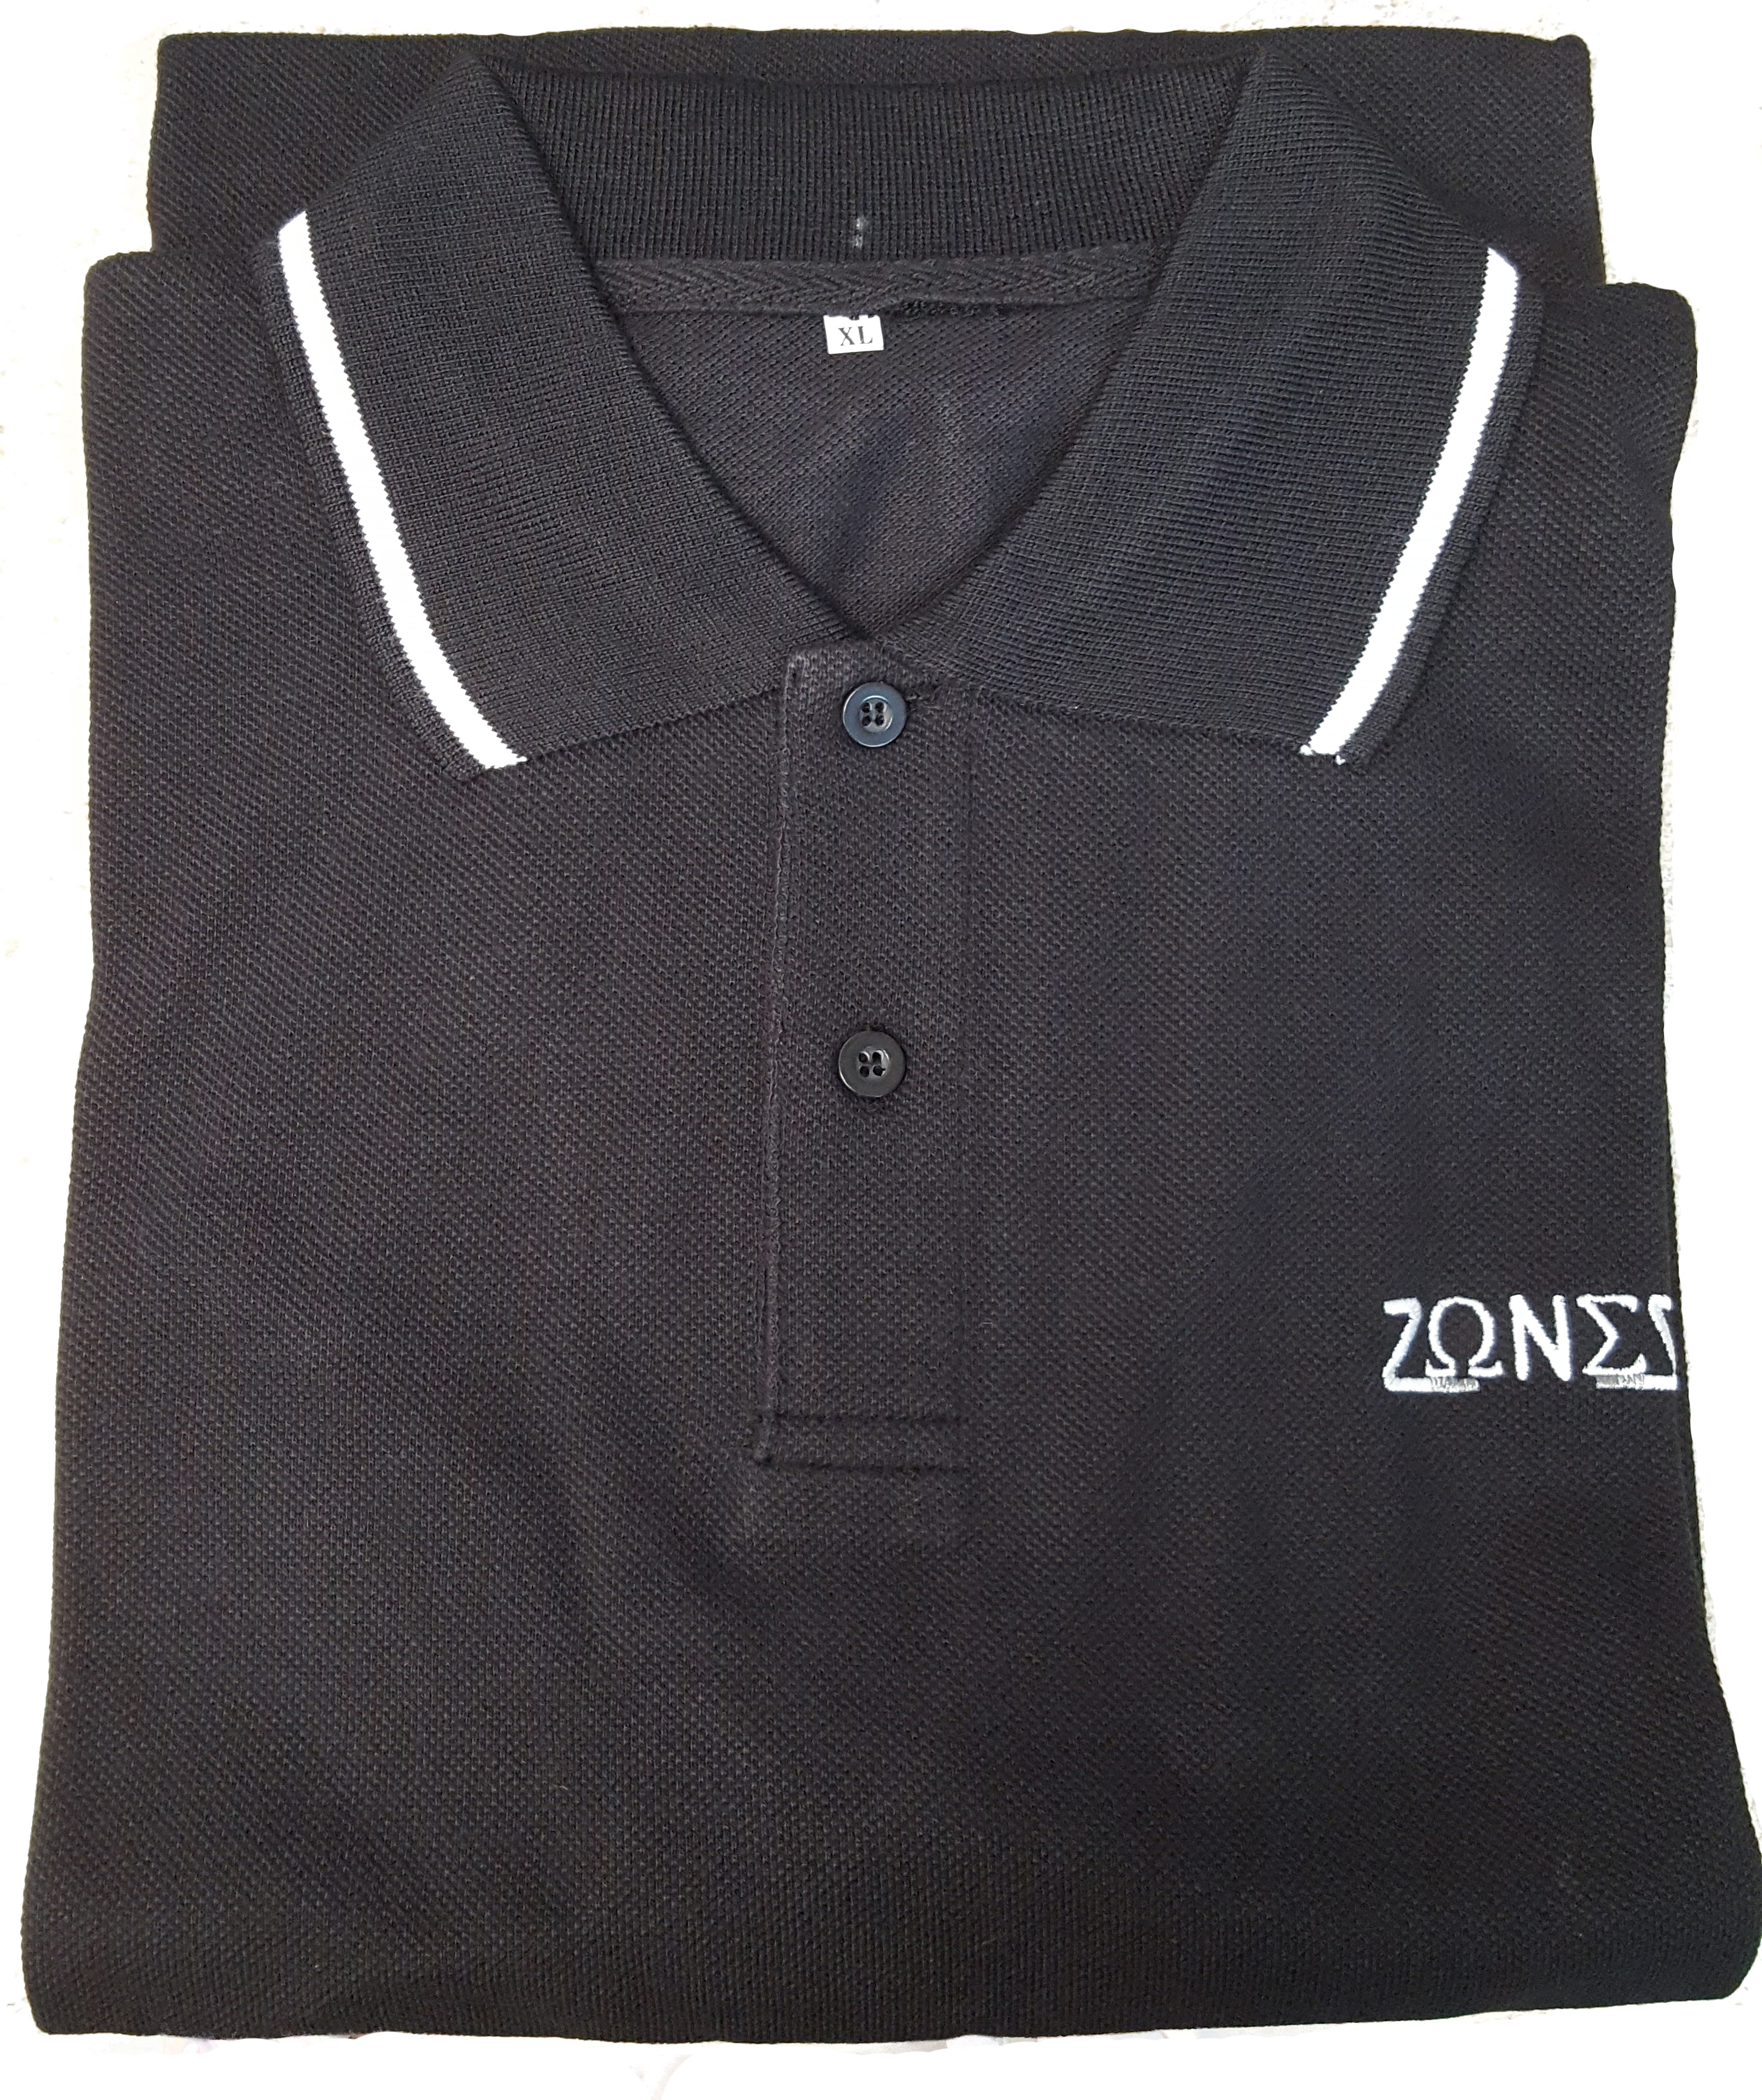 ZoneZ Shirt